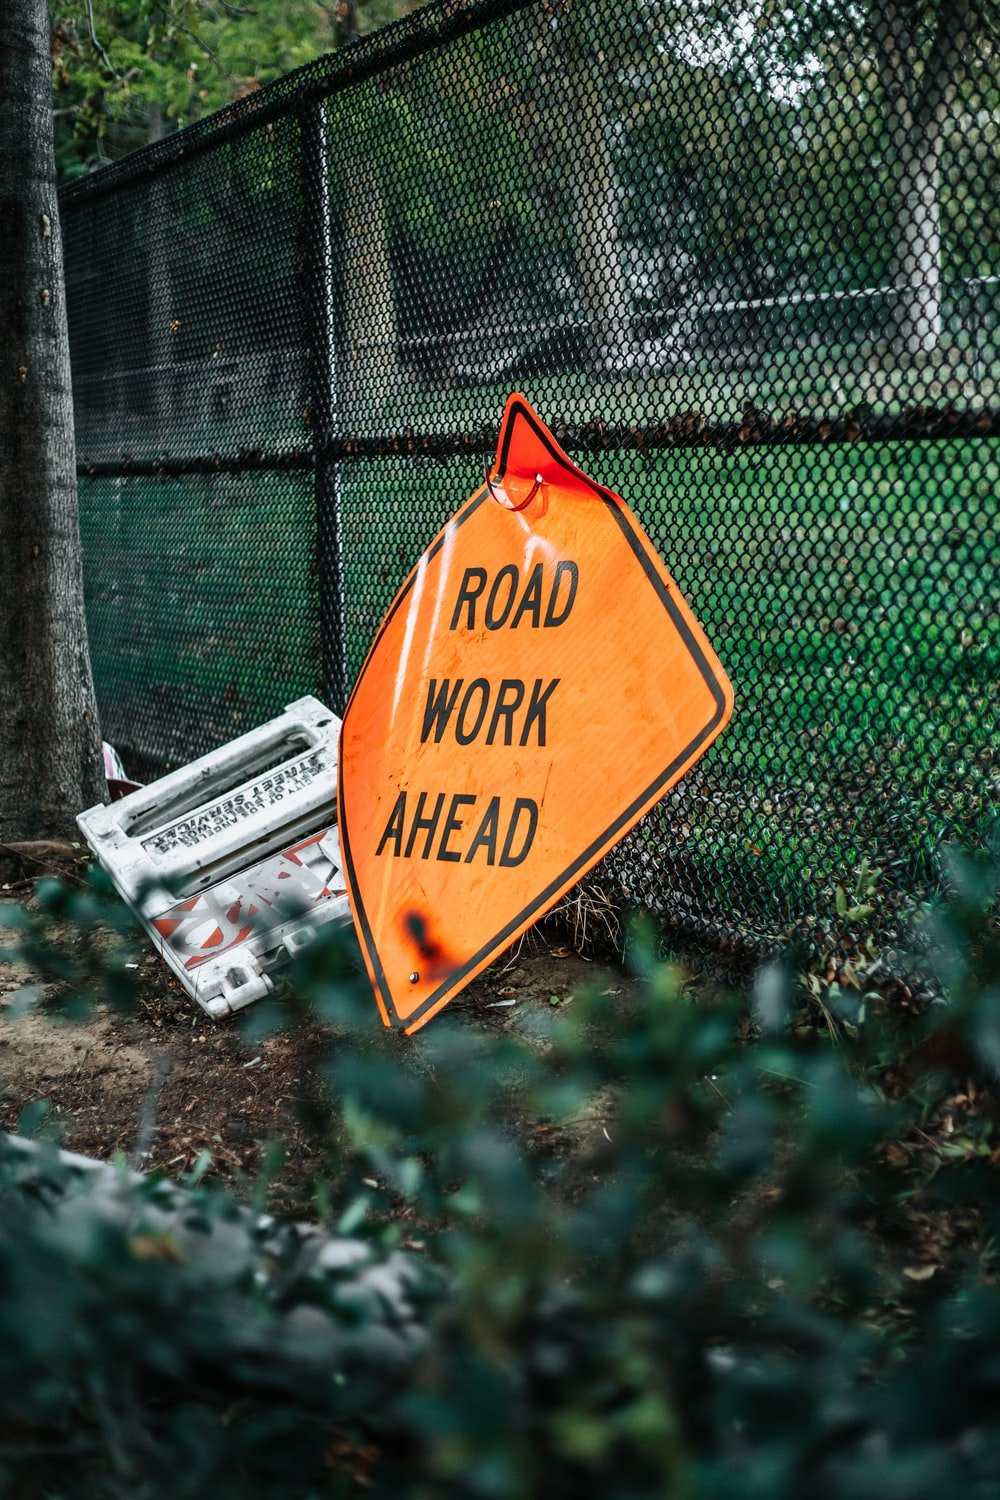 road work ahead signage leaning on chain link fence